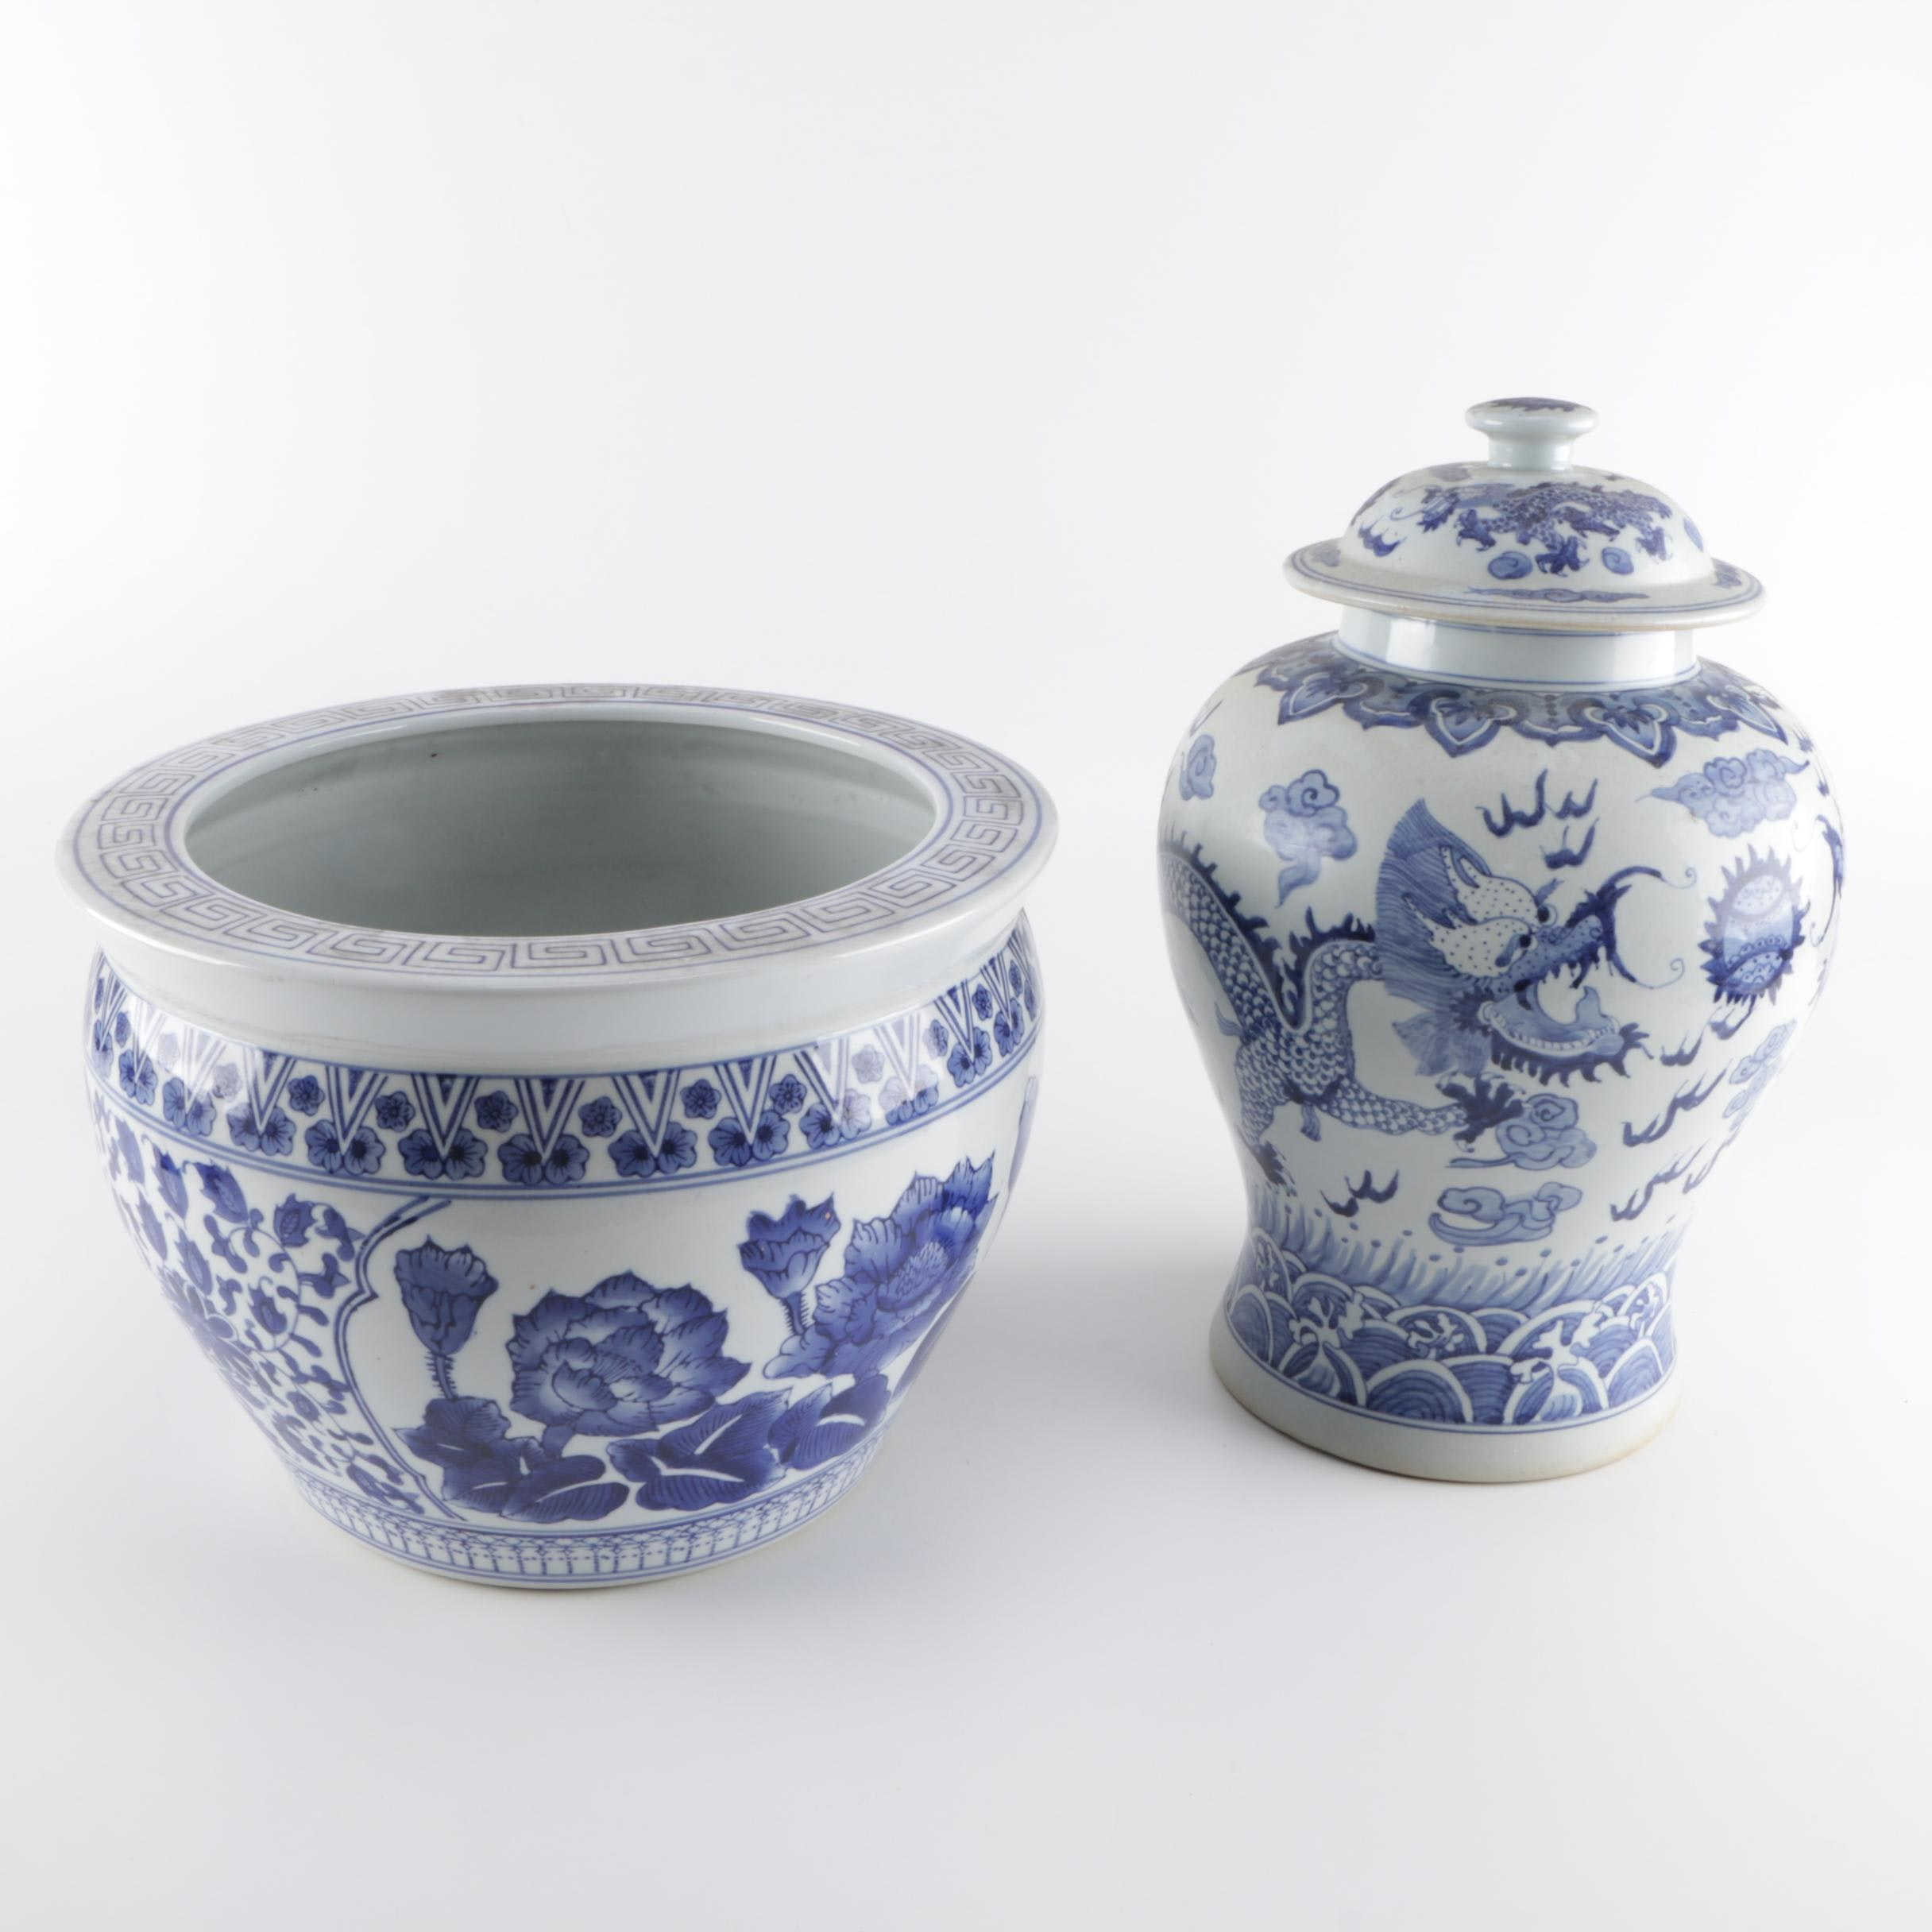 Chinese Made Jardiniere and Covered Ginger Jar